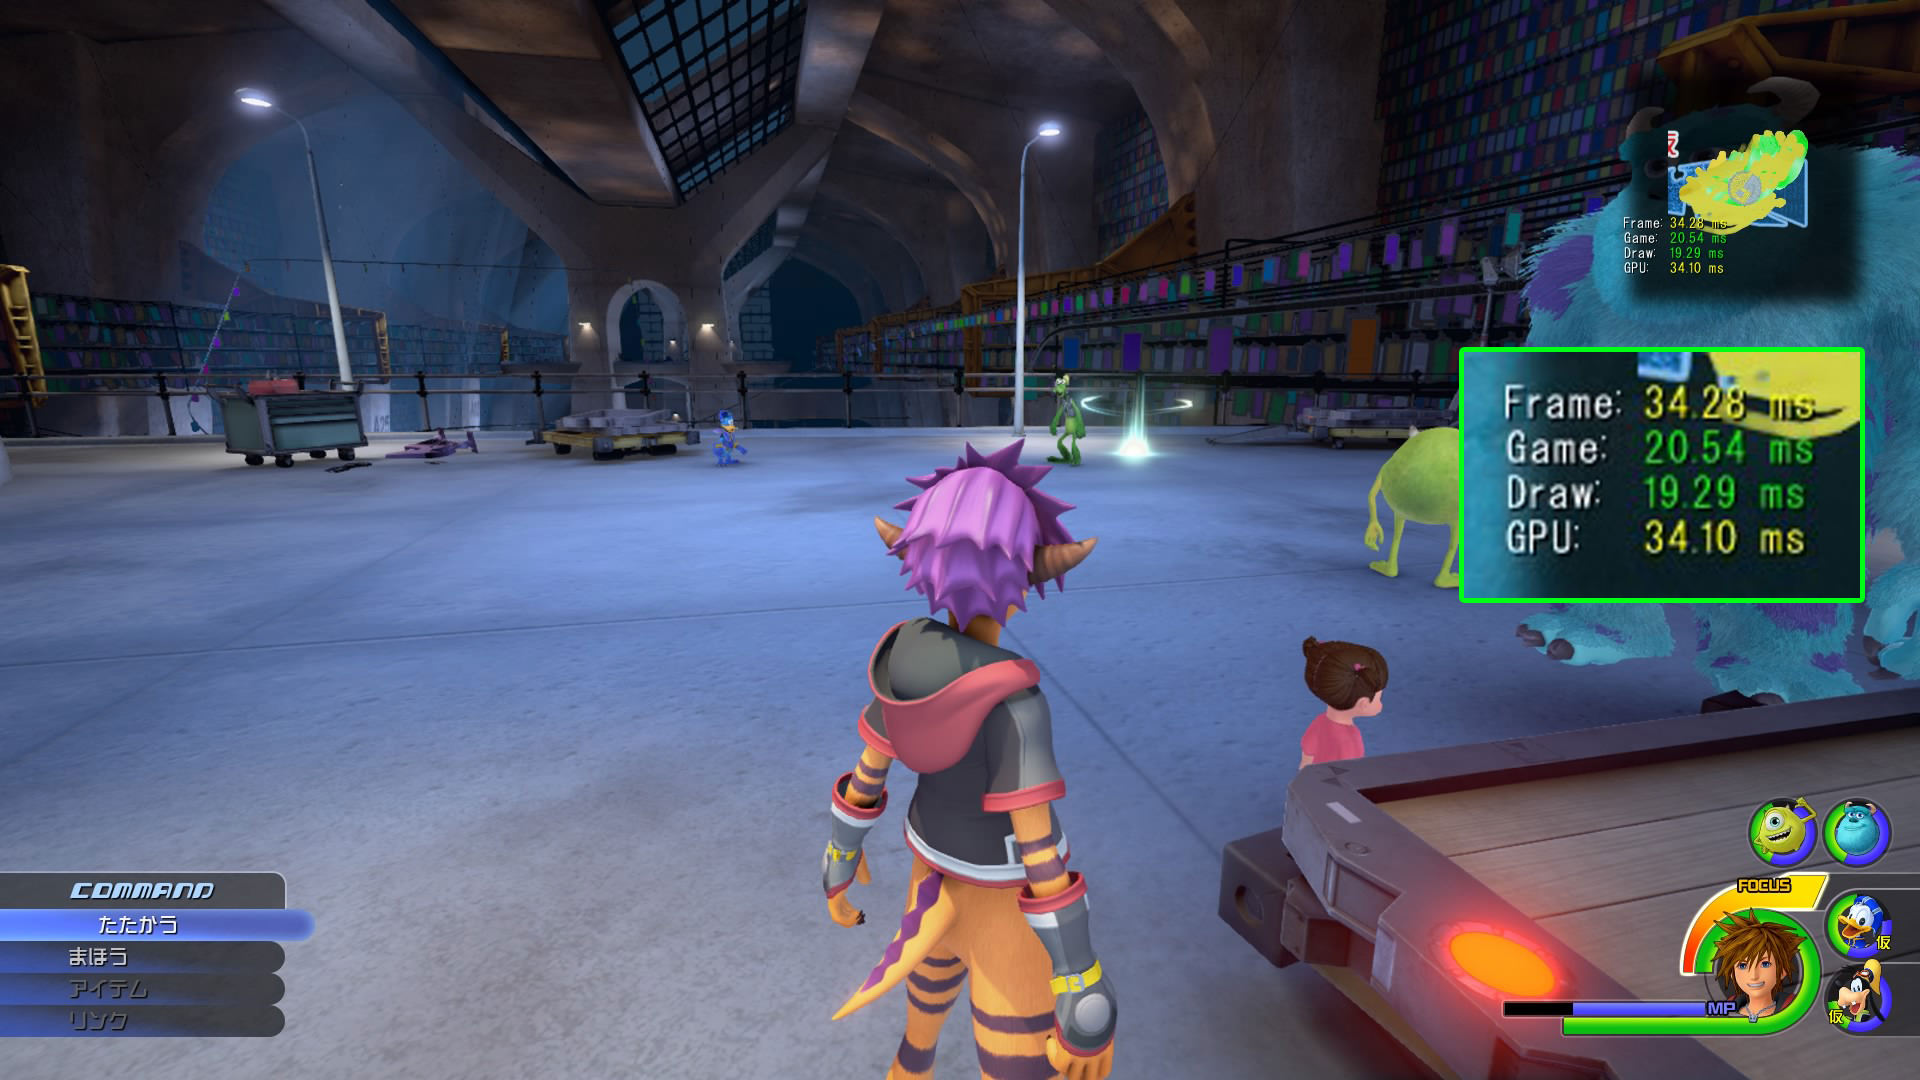 Leaked Kingdom Hearts 3 screenshots appear to confirm a new world